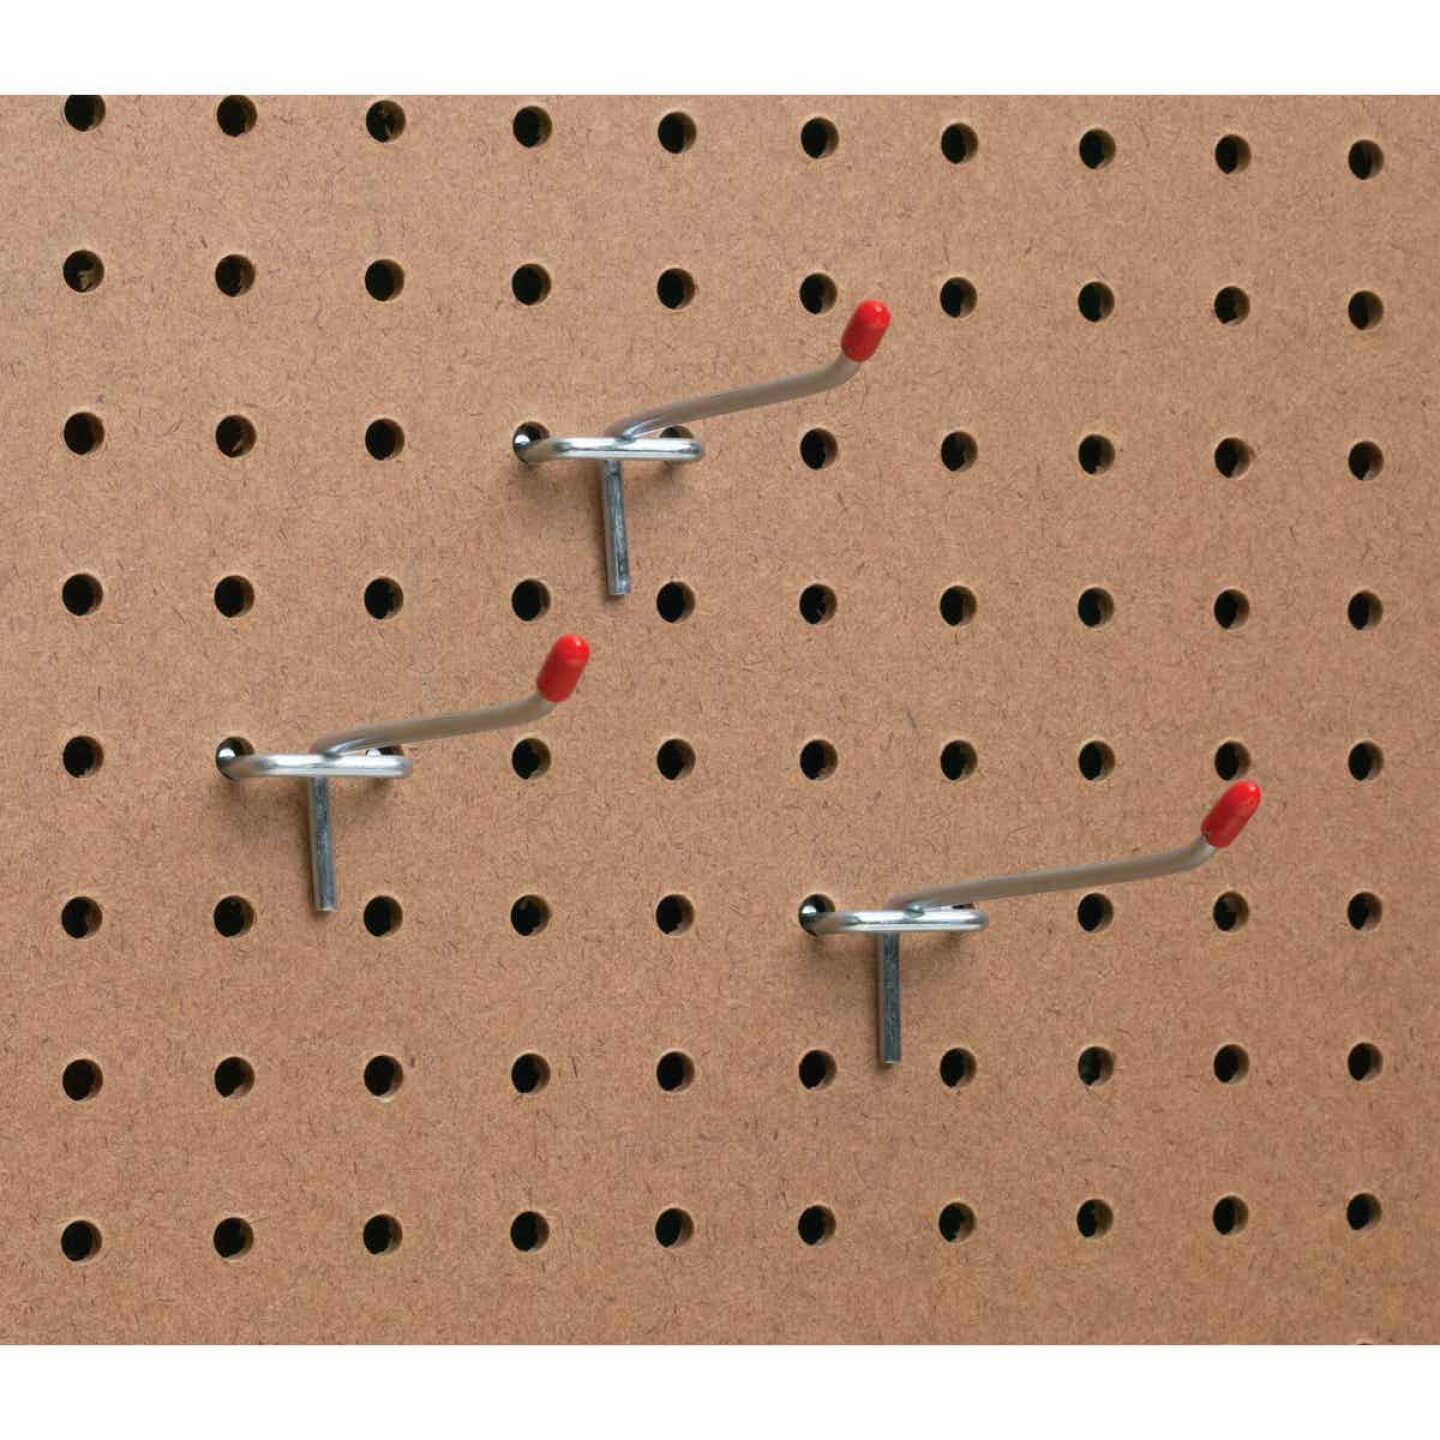 4 In. Light Duty Safety Tip Straight Pegboard Hook (3-Count) Image 3